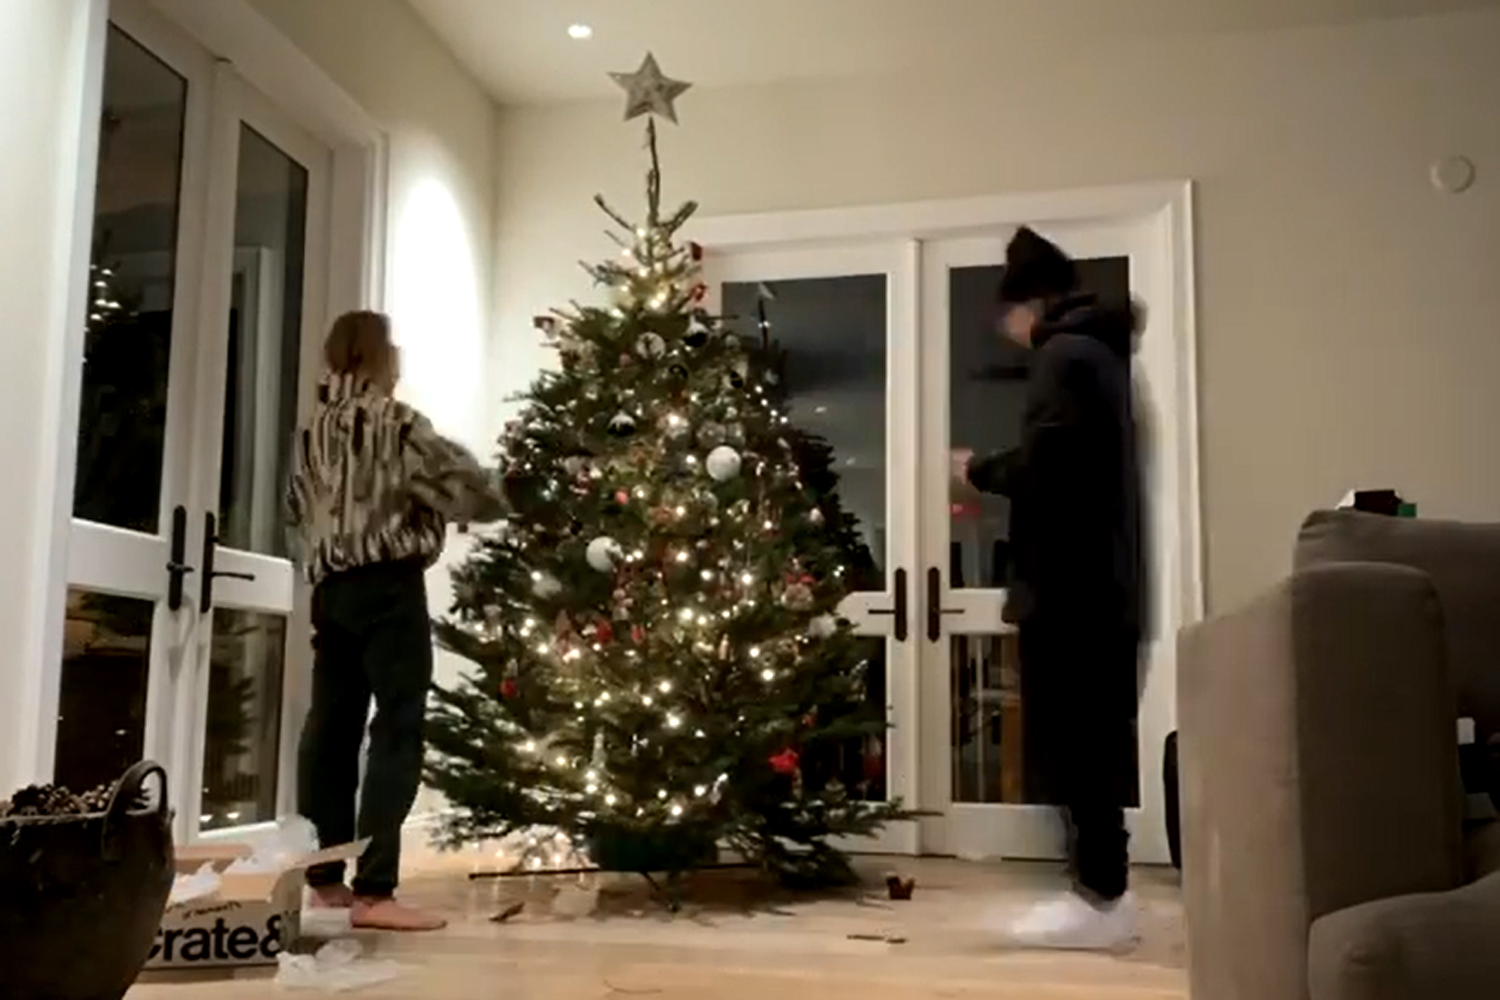 Justin Bieber Says Decorating Christmas Tree Is 'Way Better' with Wife Hailey Baldwin